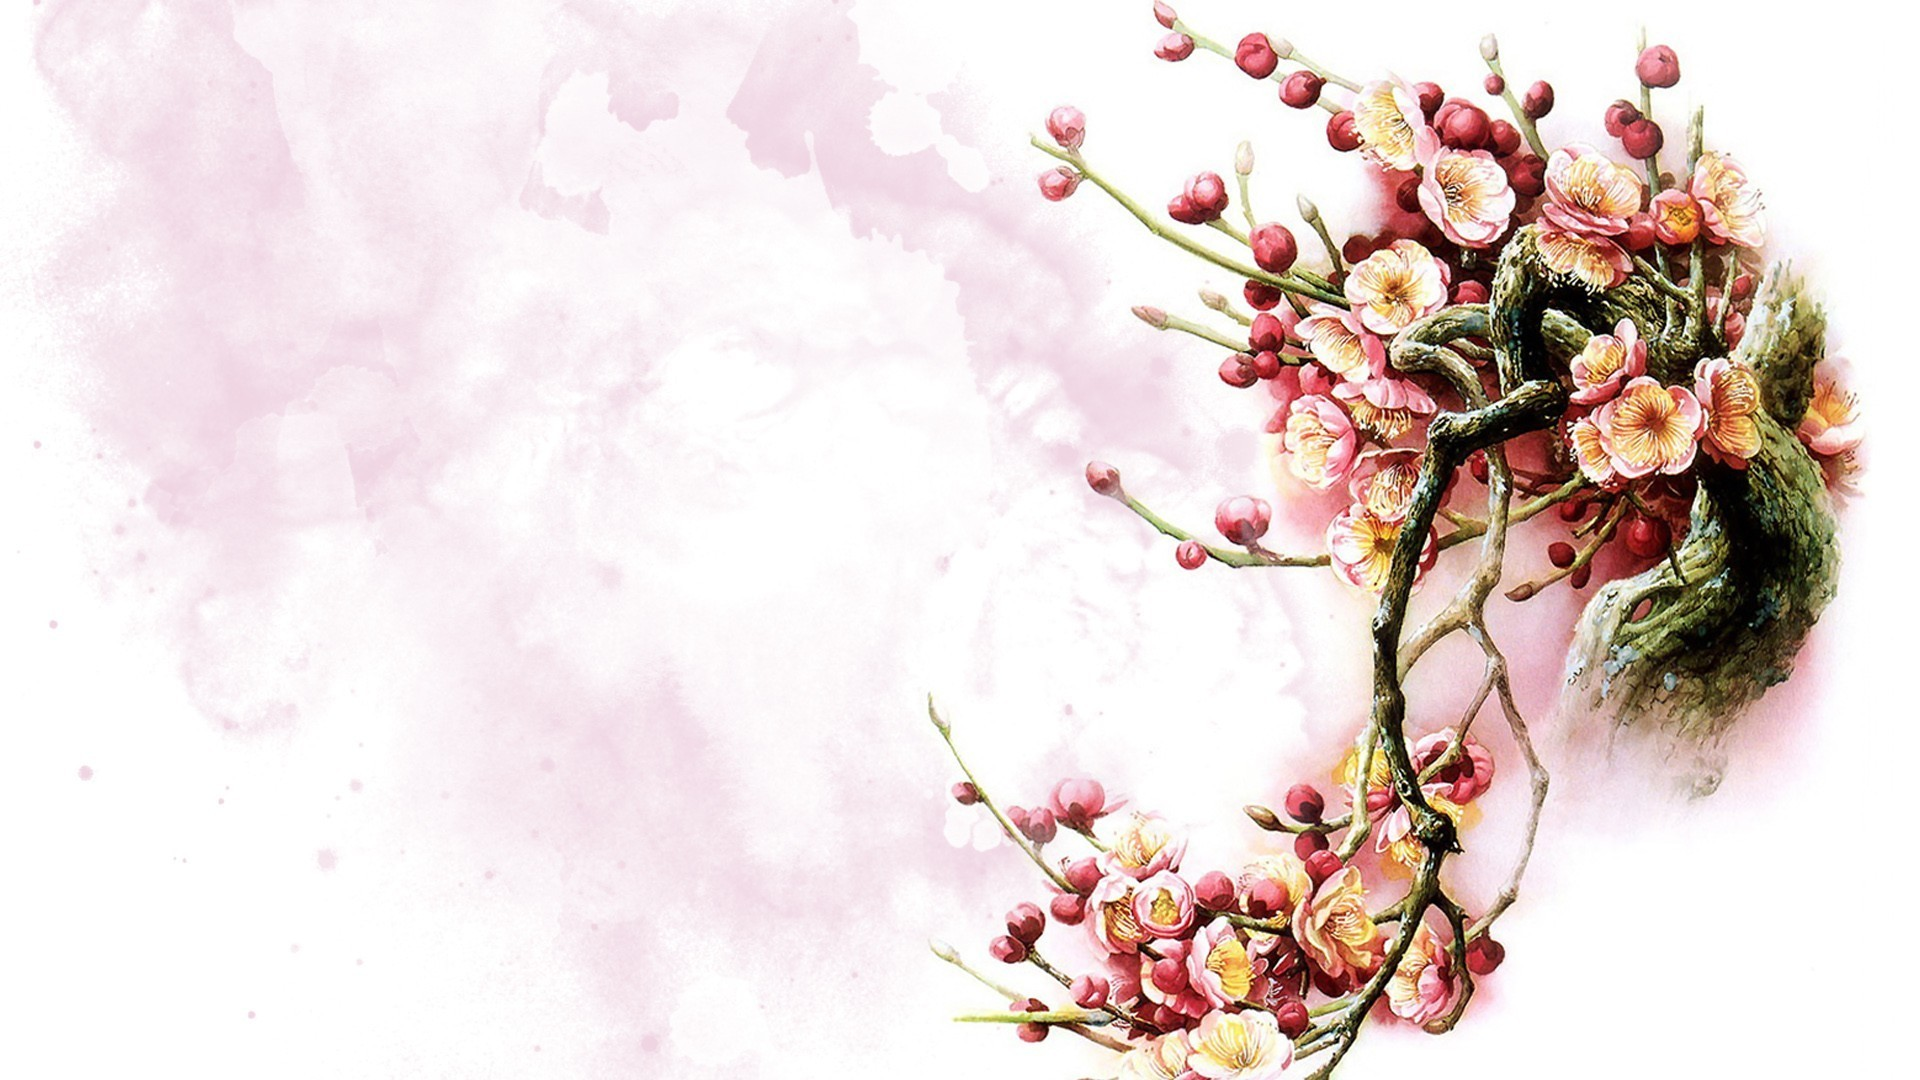 flower painting watercolor wallpaper - photo #42